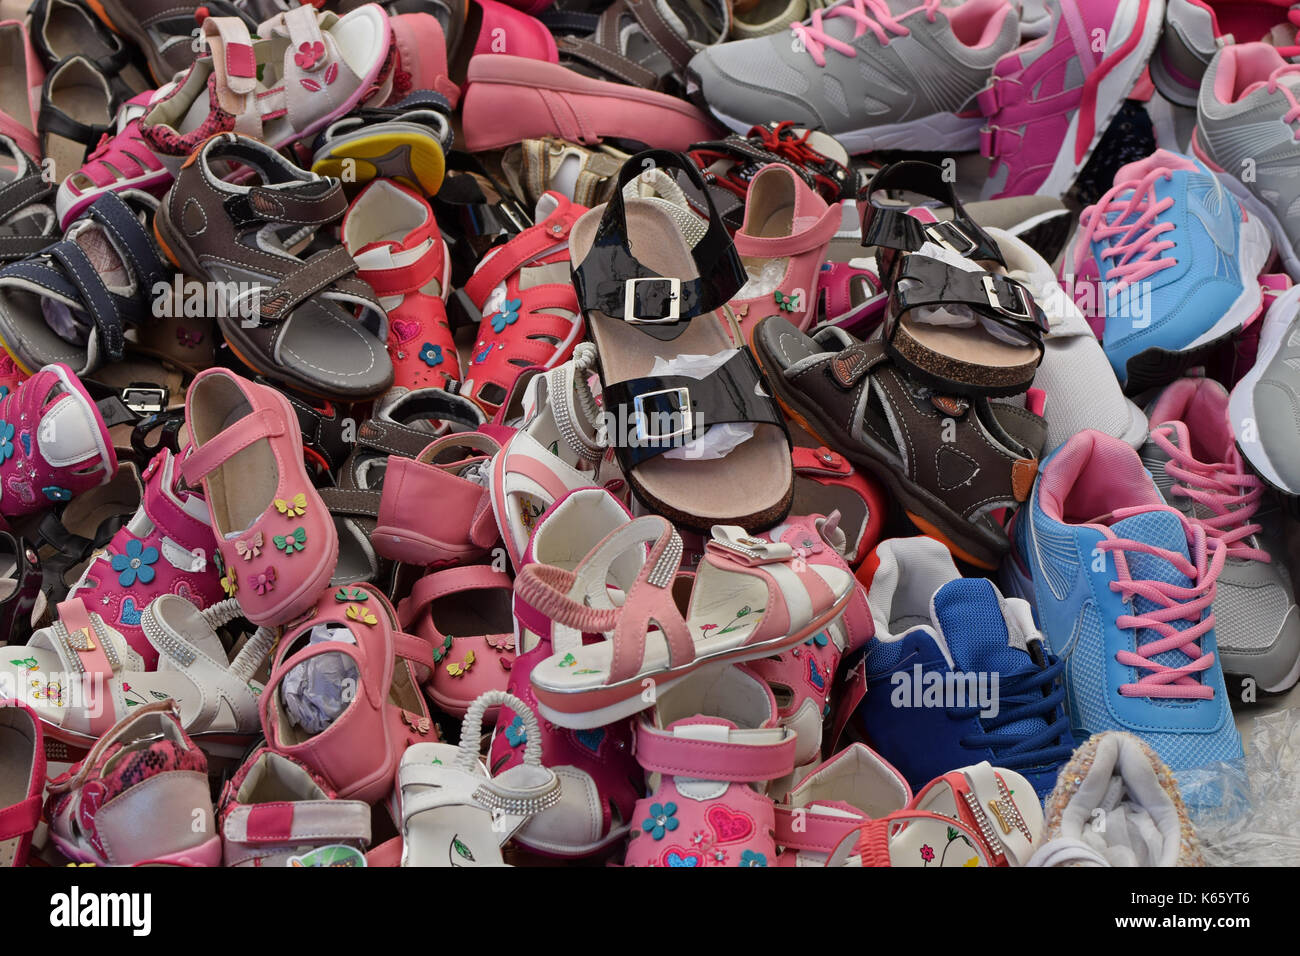 aaf76b7b661ce2 Kids shoes for sale at street market. Assorted pile of footwear. - Stock  Image